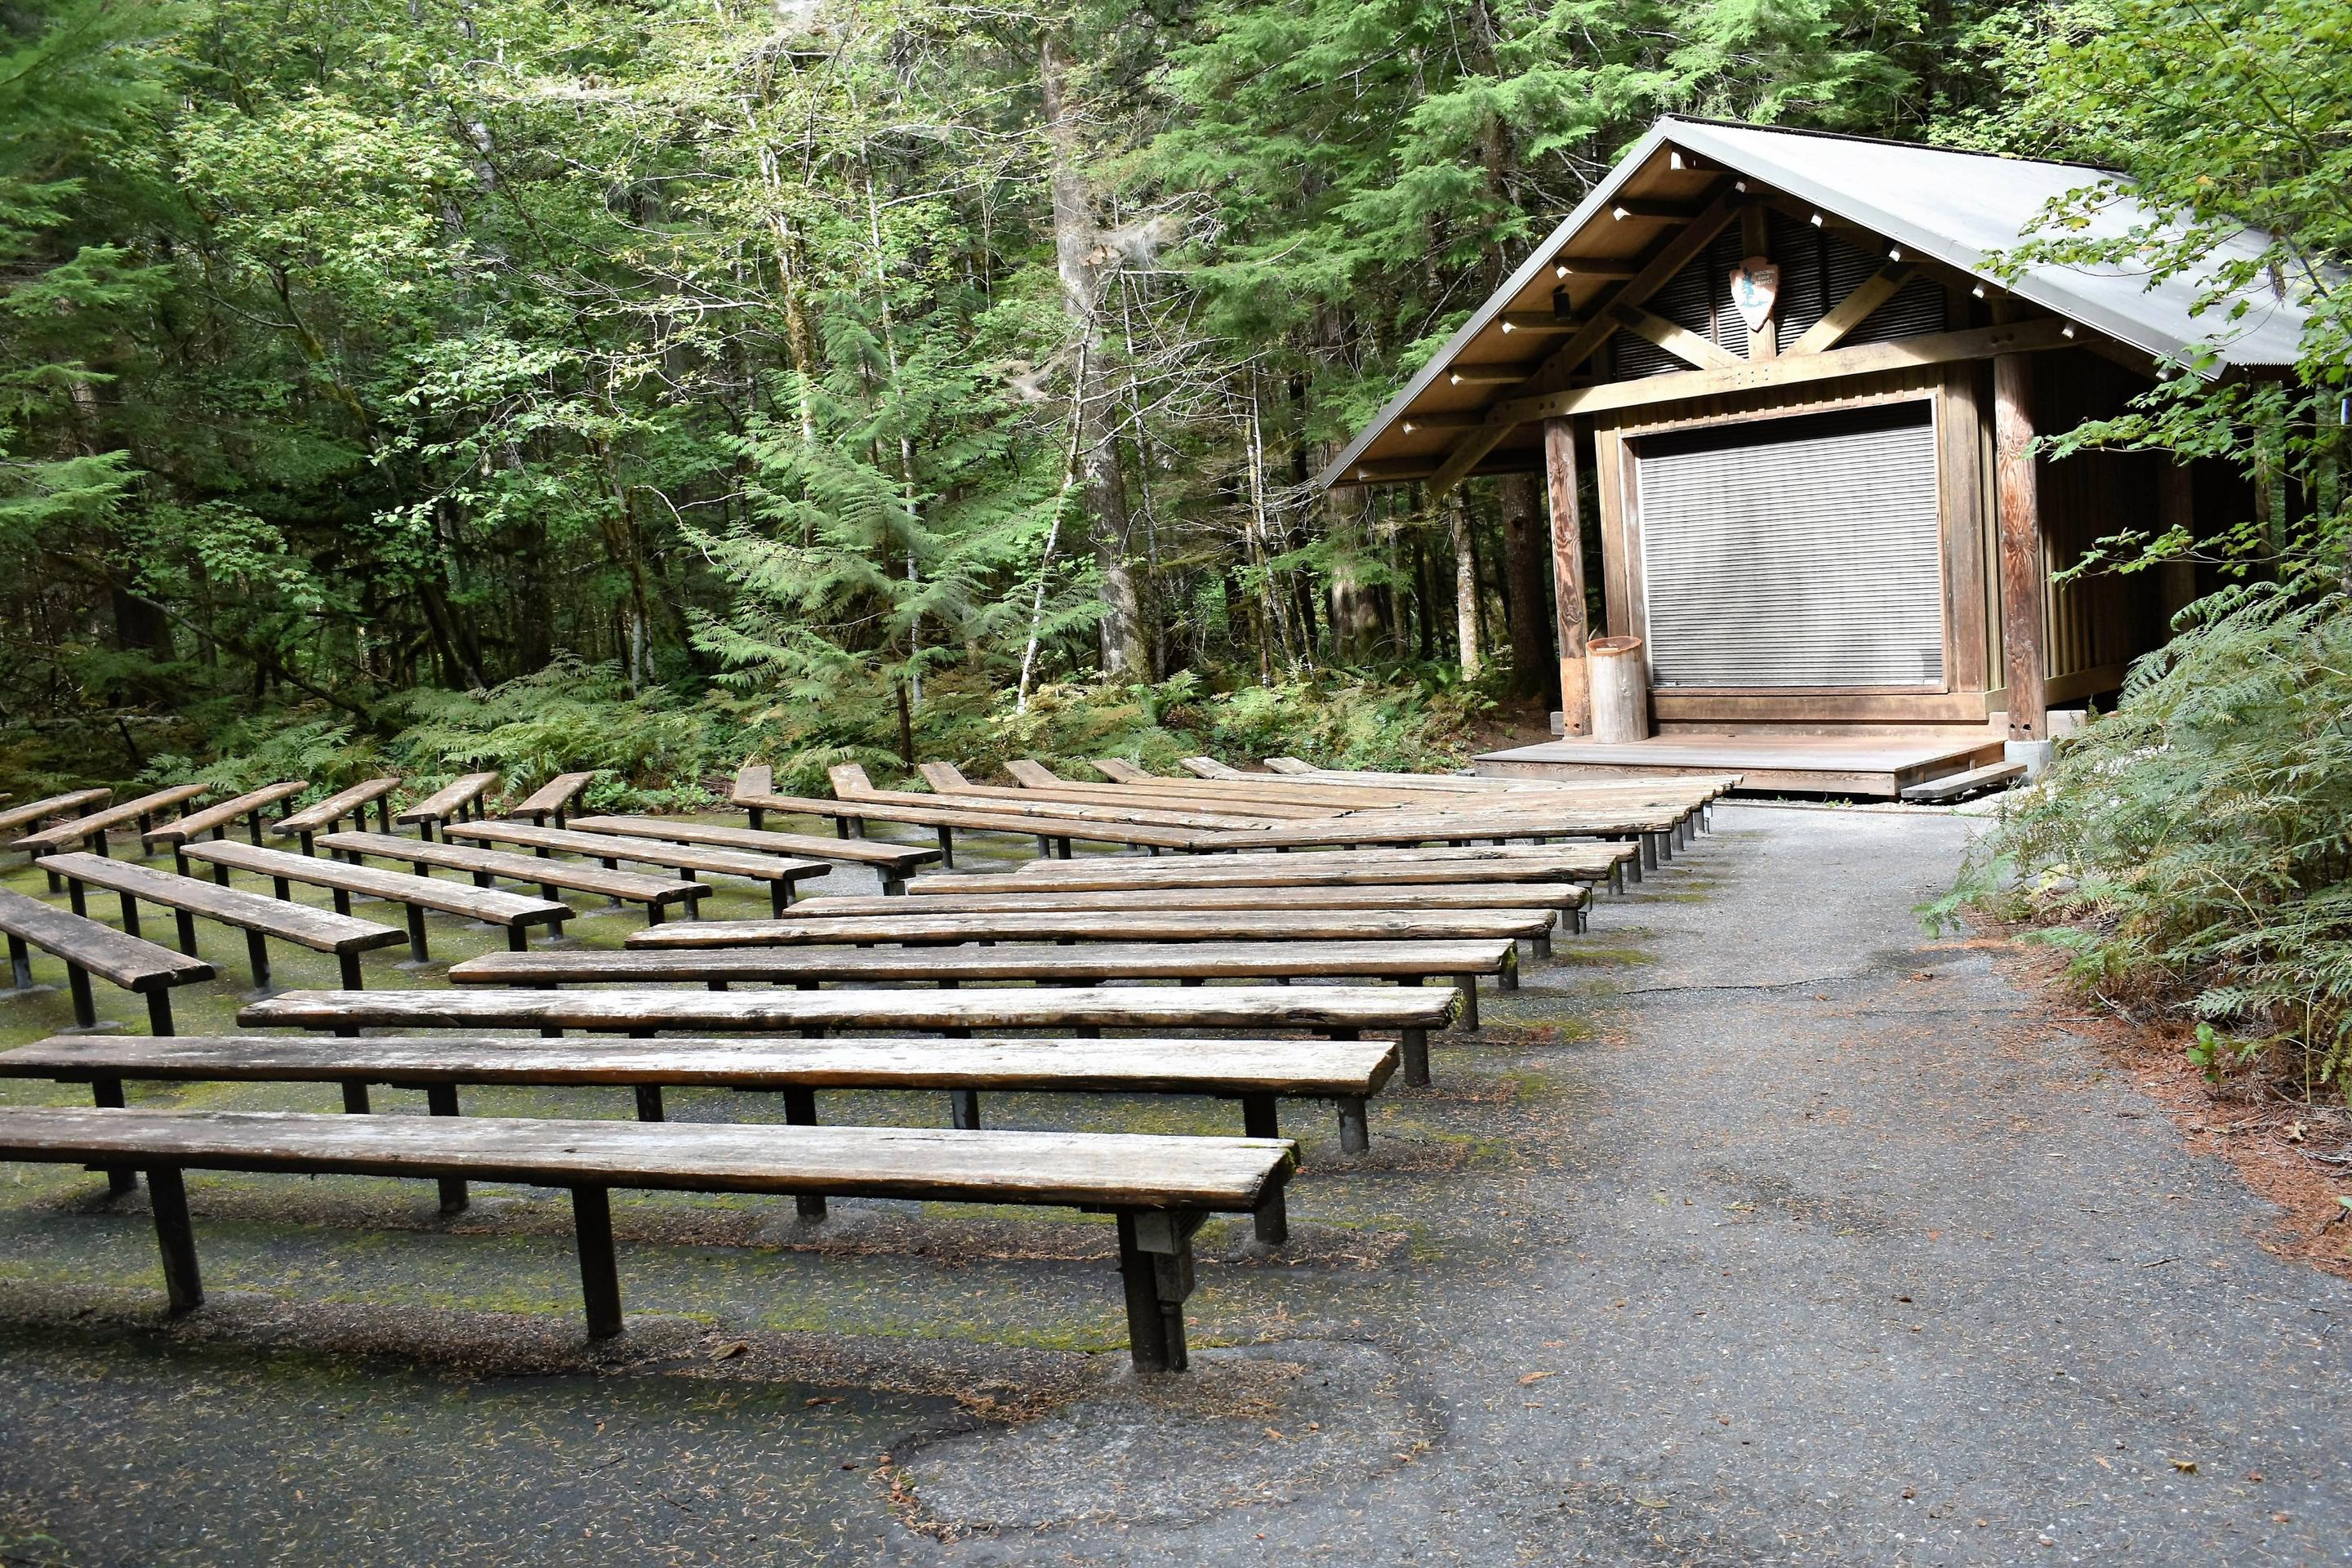 Rustic amphitheater in campgroundAmphitheater located in the campground for Ranger programs